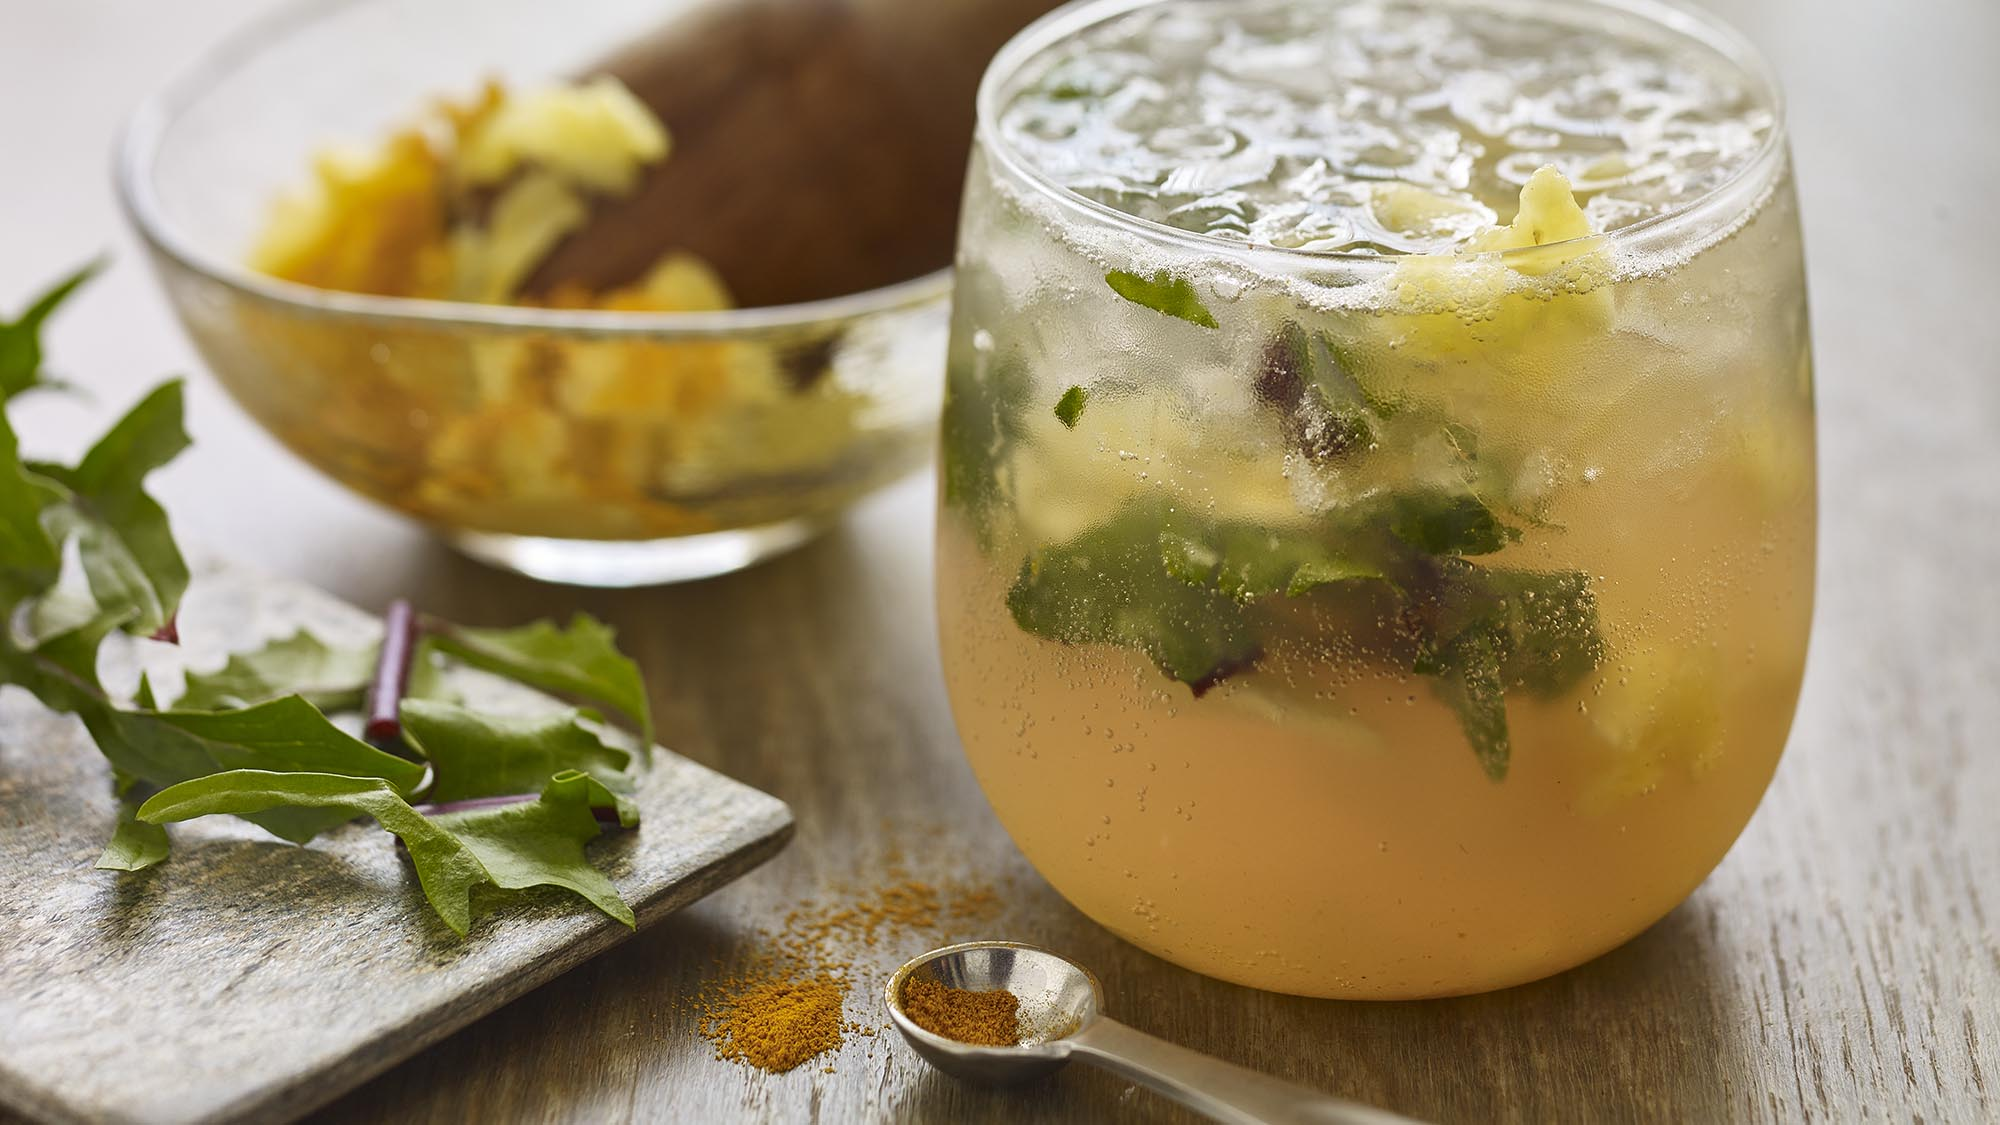 McCormick Pineapple Turmeric Mocktail with Muddled Dandelion Greens